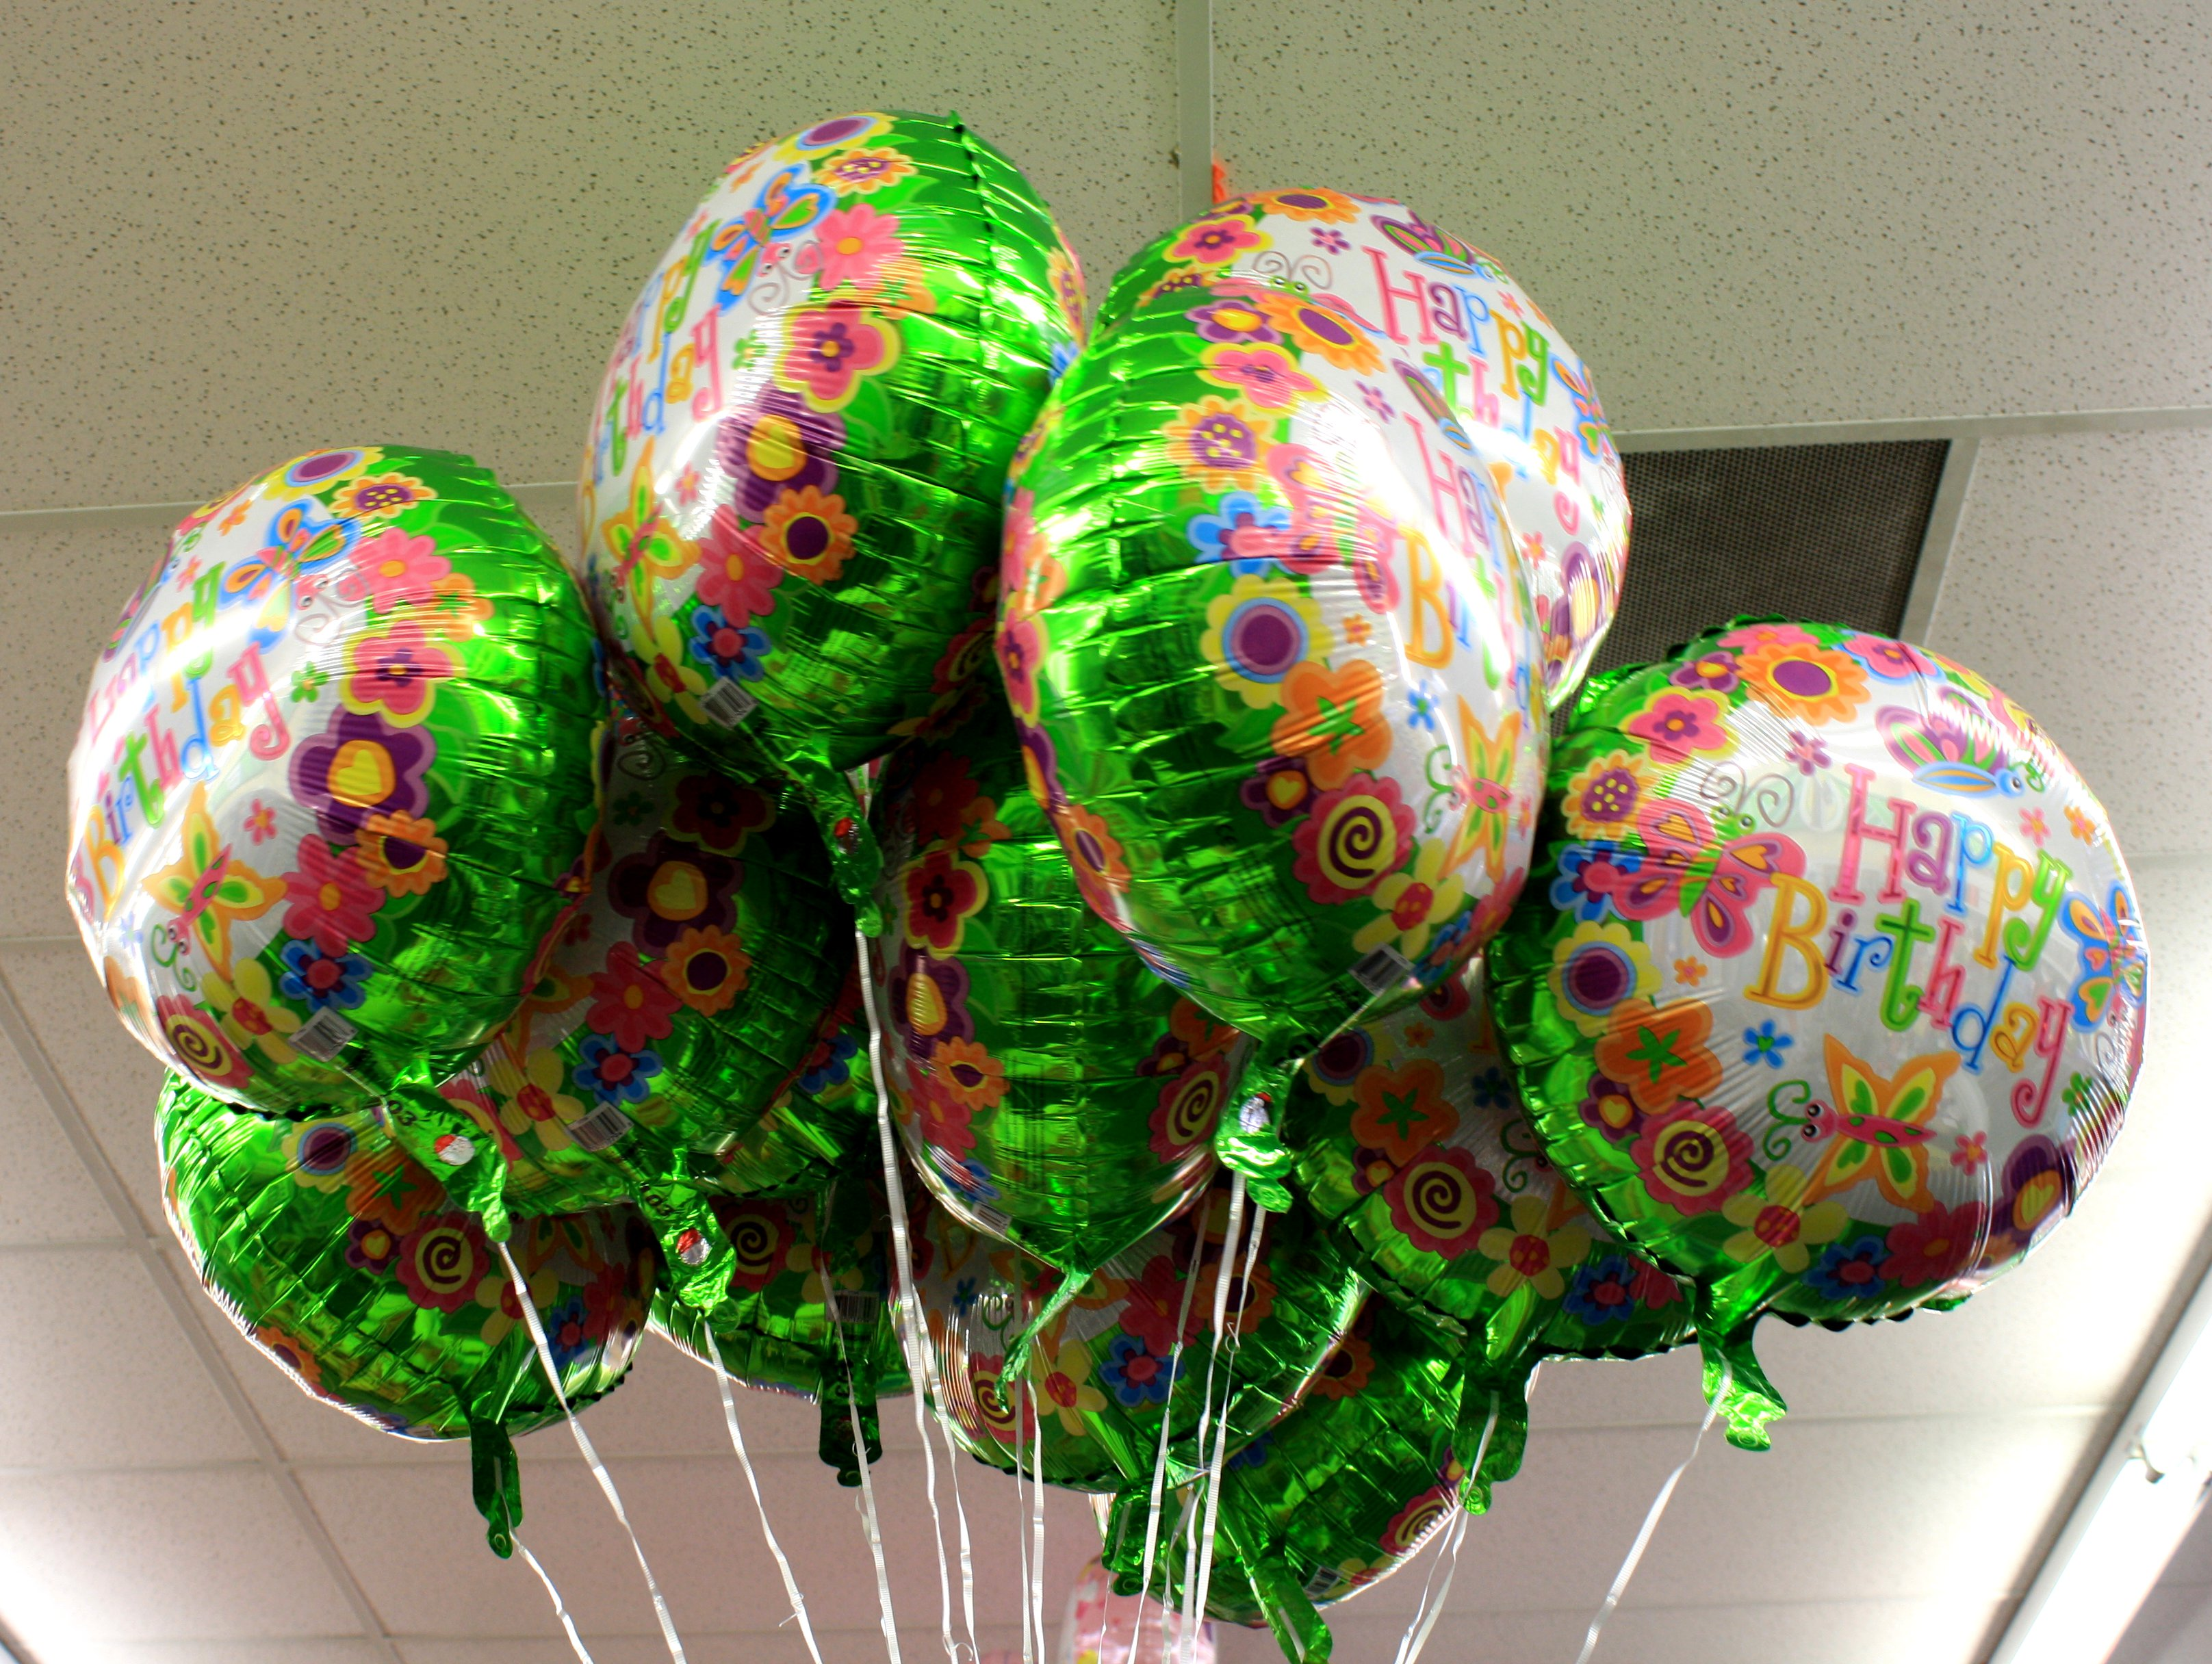 Click Here To Download Full Resolution Image This Free High Res Photo Features A Bunch Of Happy Birthday Balloons